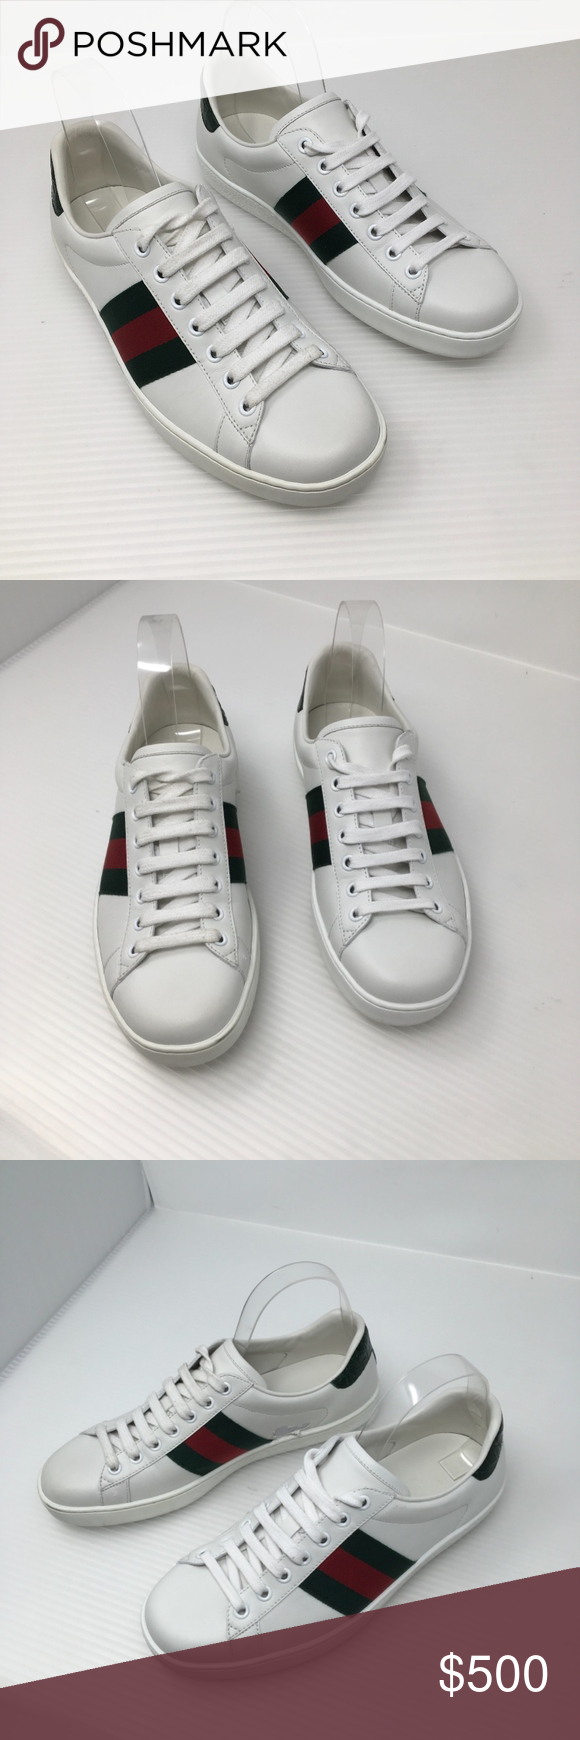 gucci low price shoes